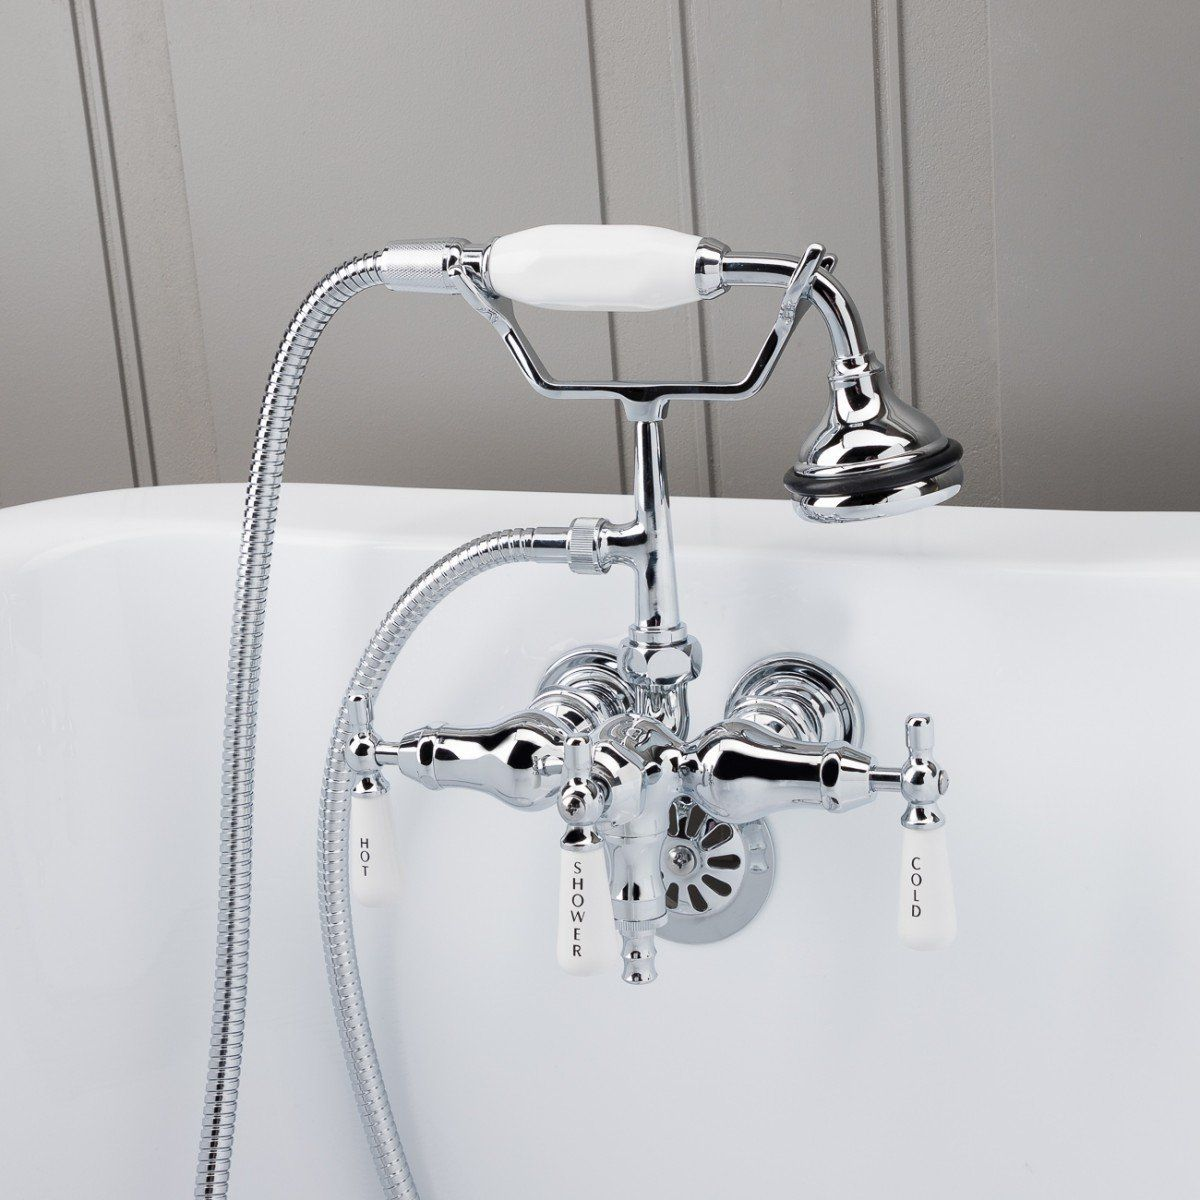 Clawfoot Tub Wall Mount Downspout Faucet With Handshower Tub